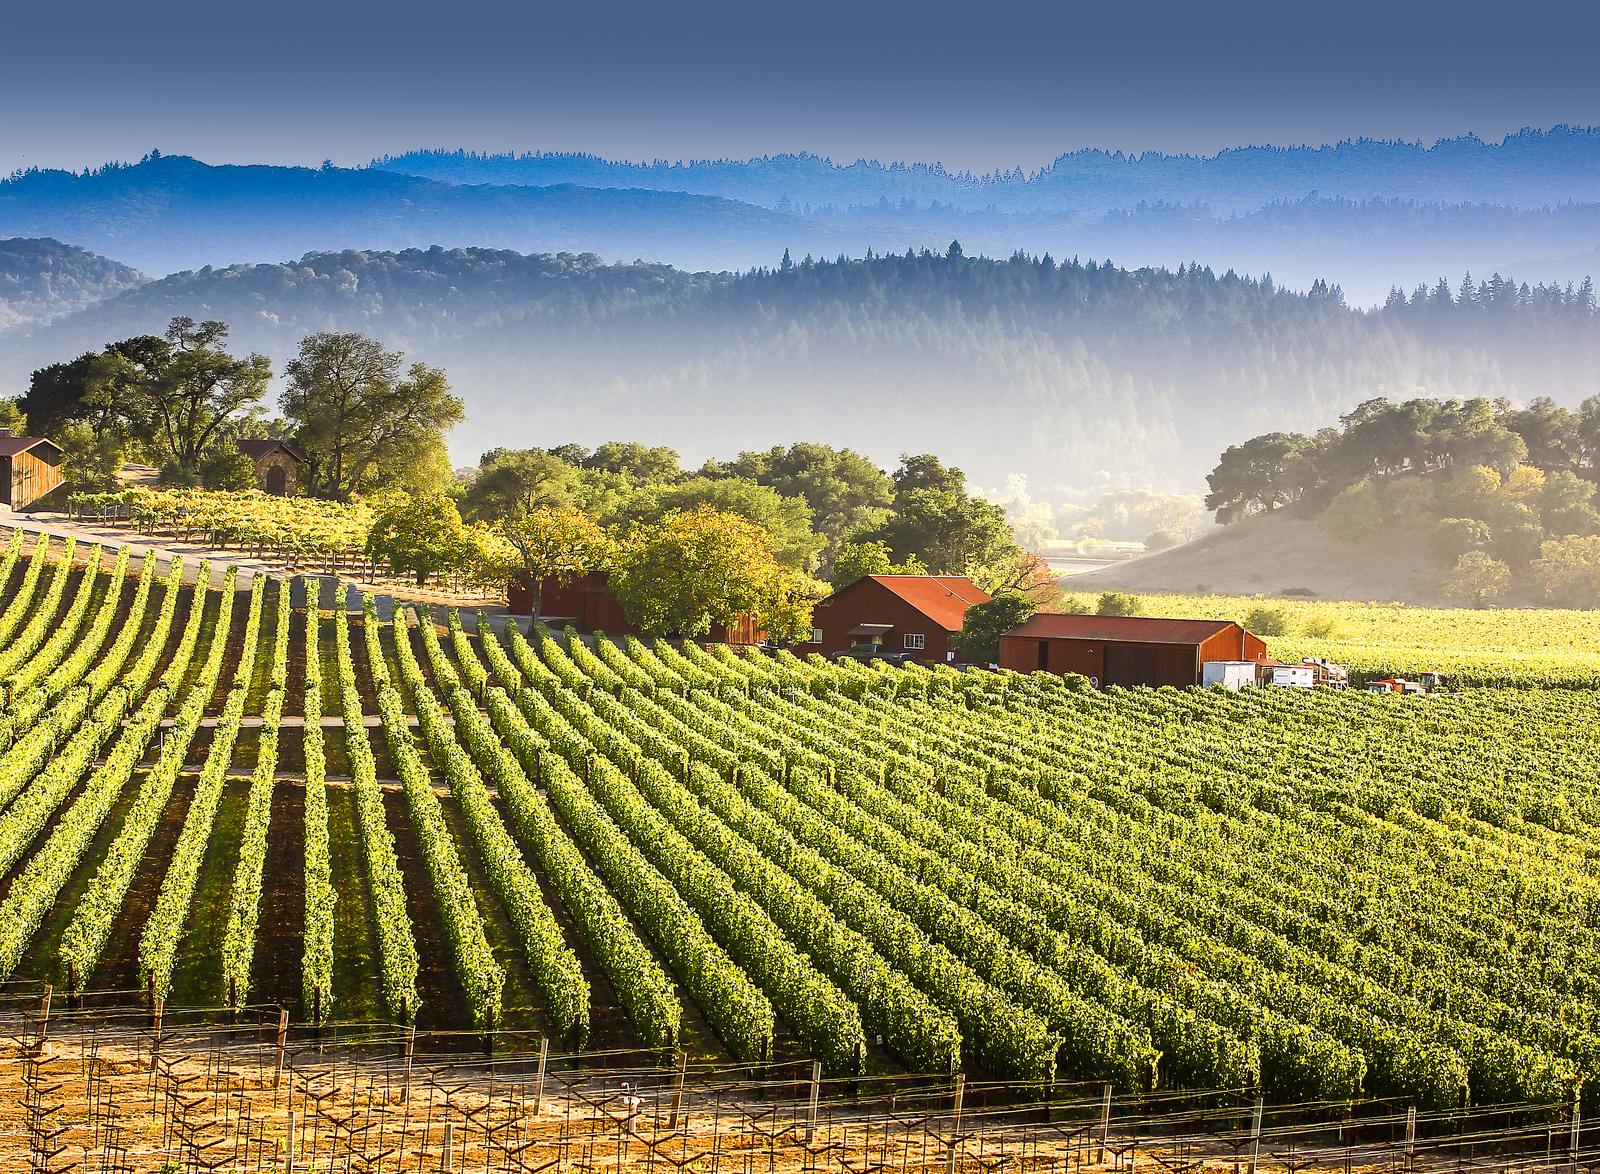 5 Unexpected Finds In Napa Valley